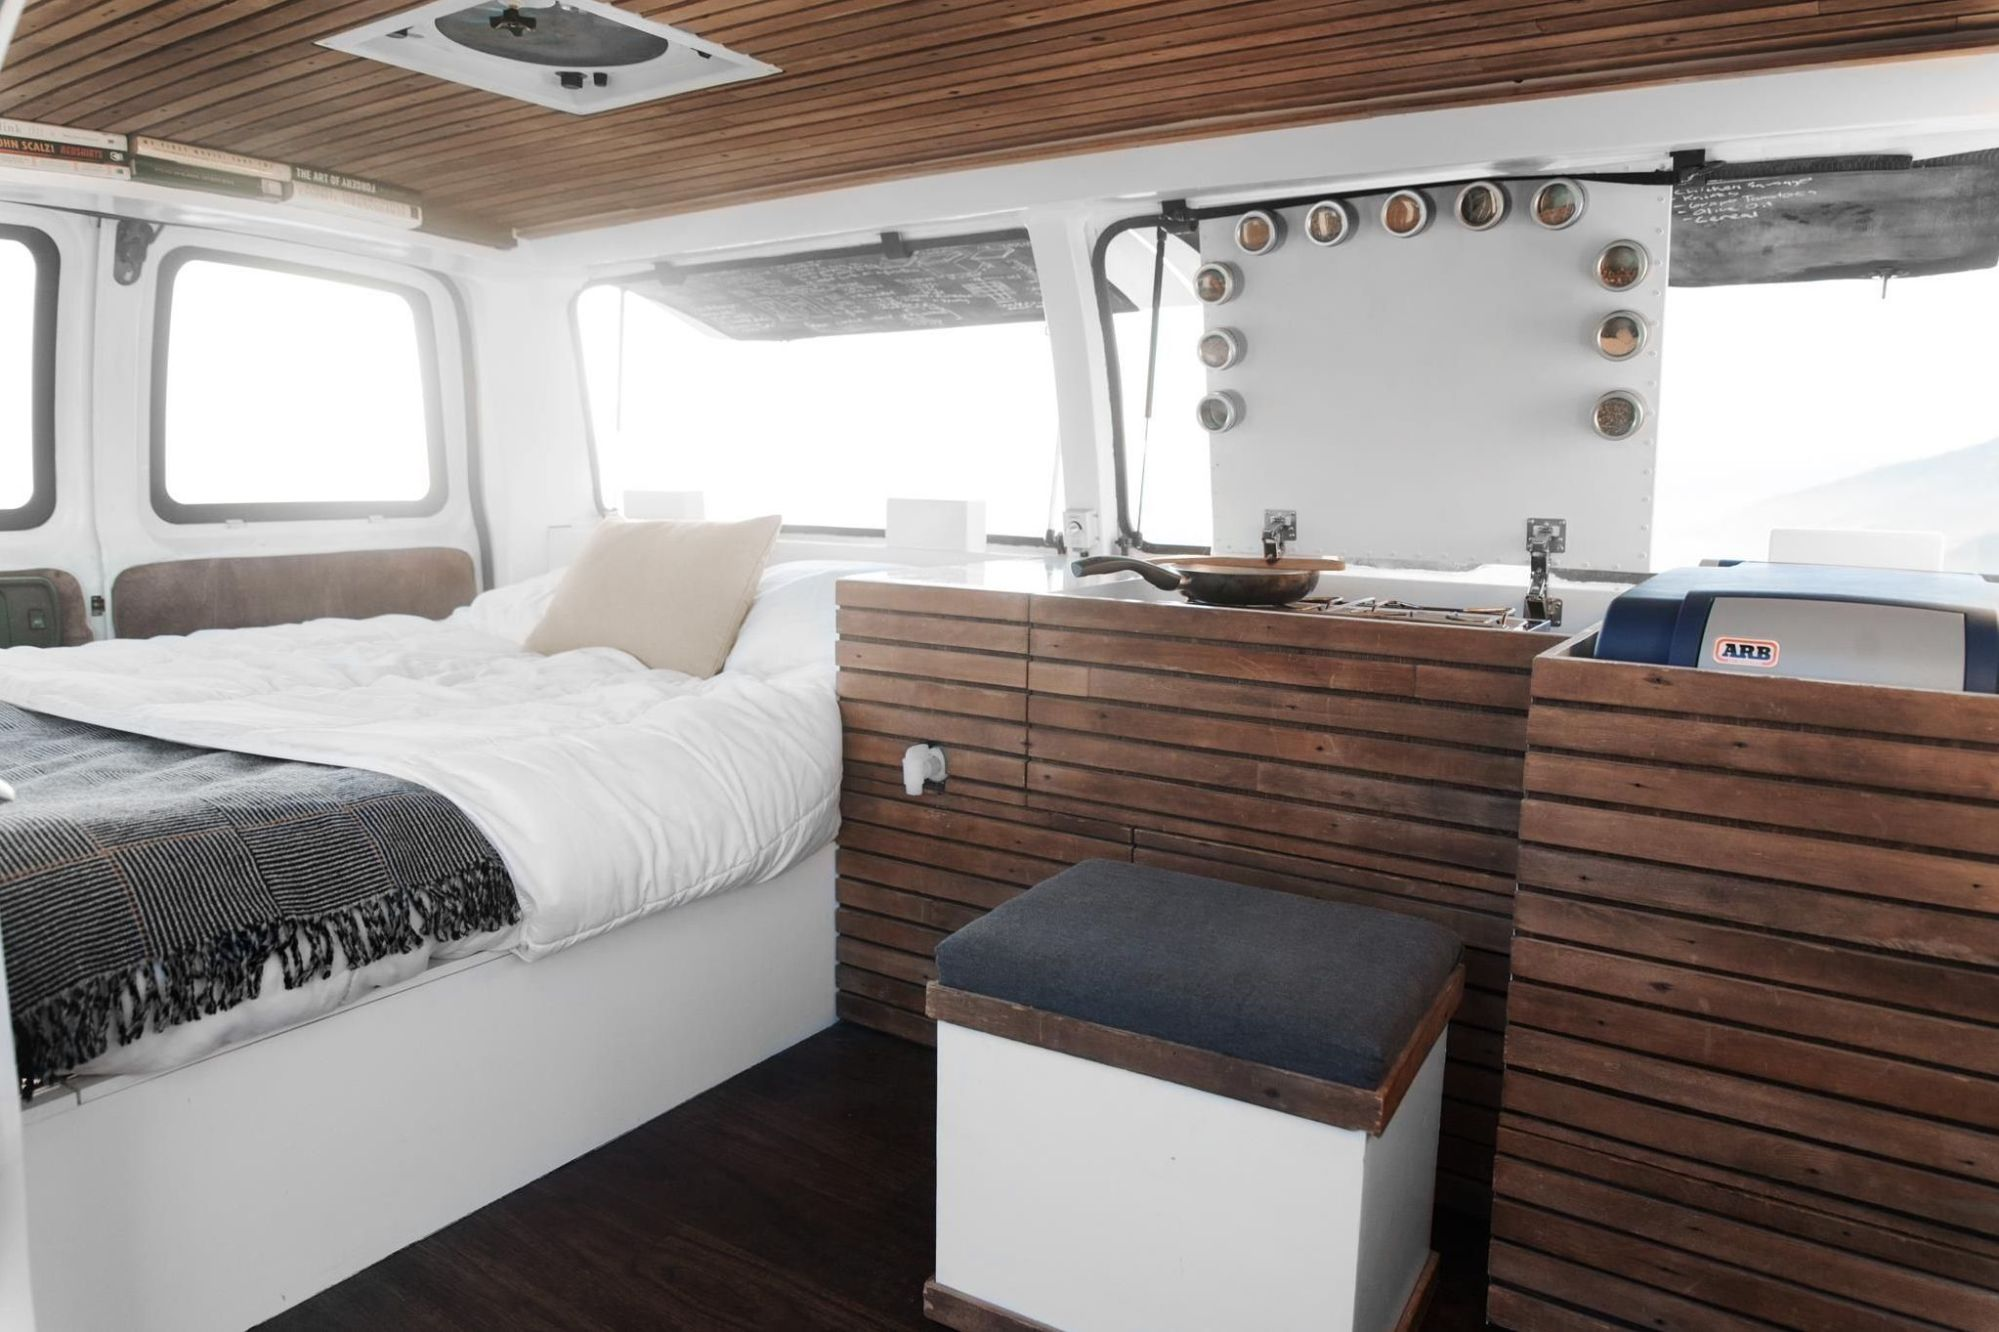 18 Simple Affordable Camper Van Conversion